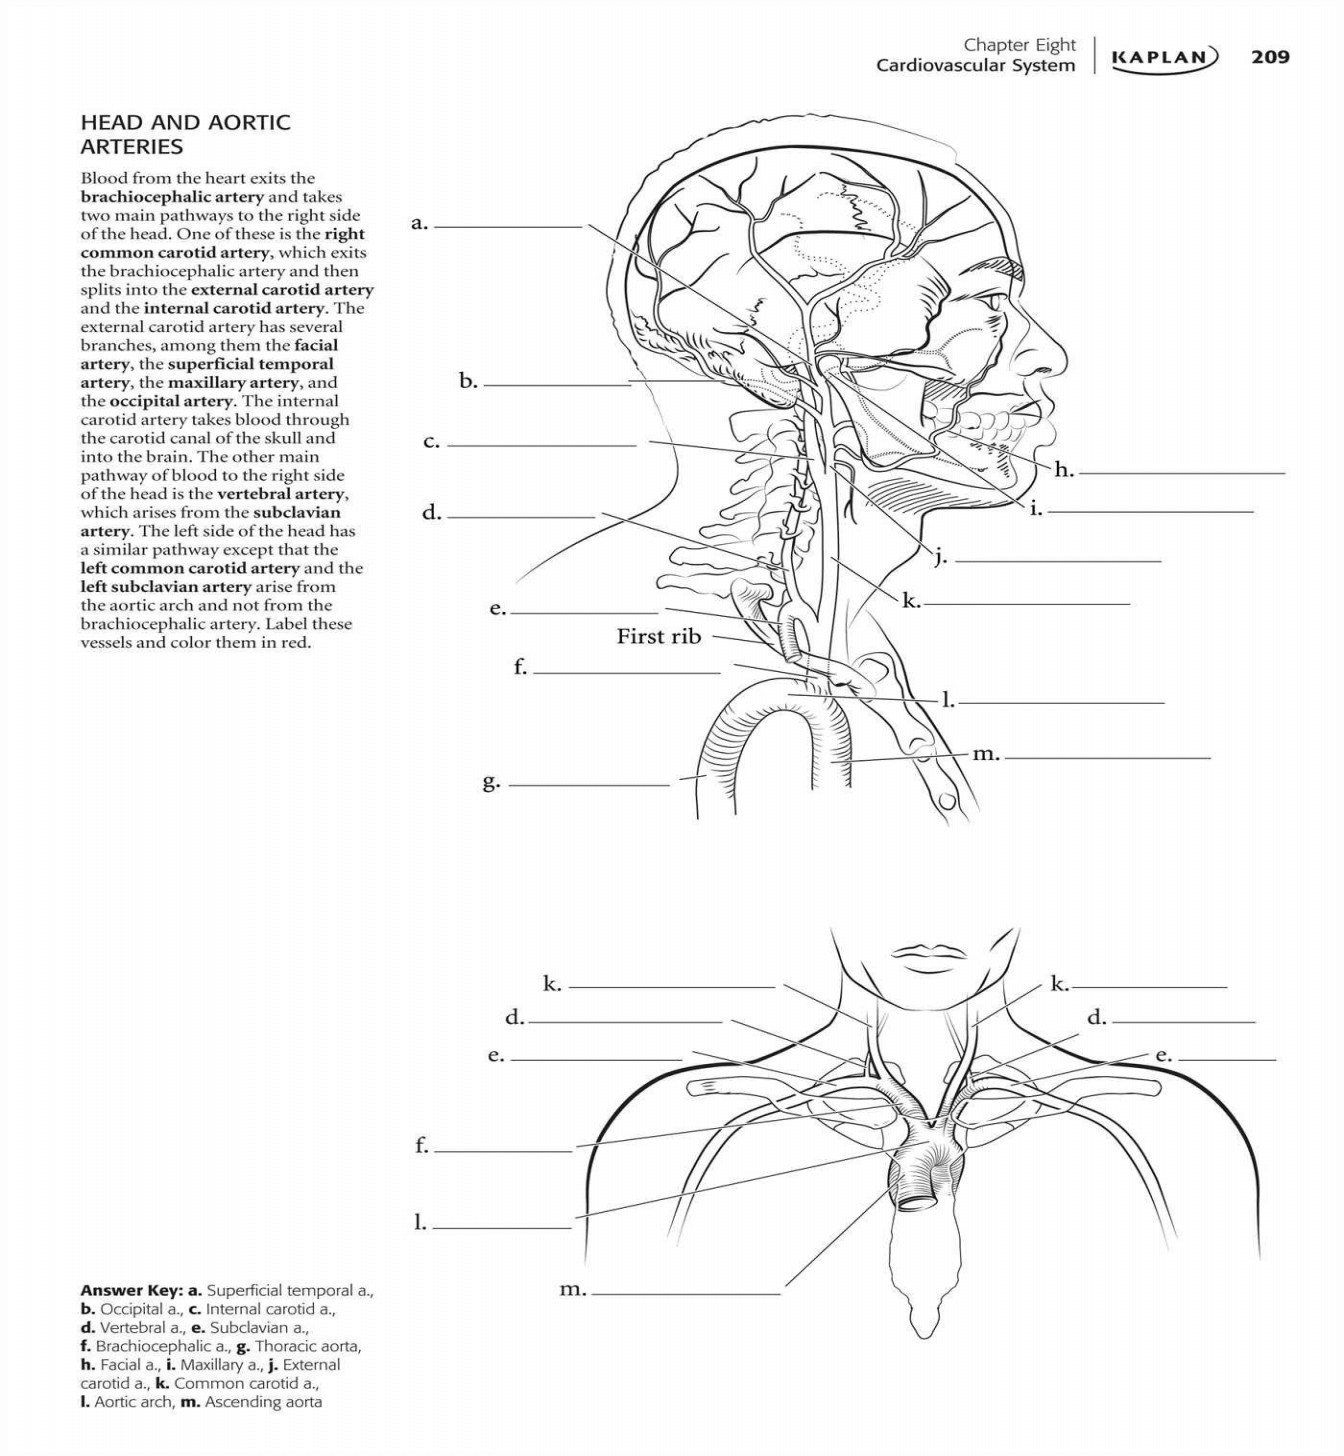 Anatomy And Physiology Coloring Workbook Answer Key Unique Anatomy Picture Steven Hill Anatomy Coloring Book Drawing Book Pdf Coloring Book Pages